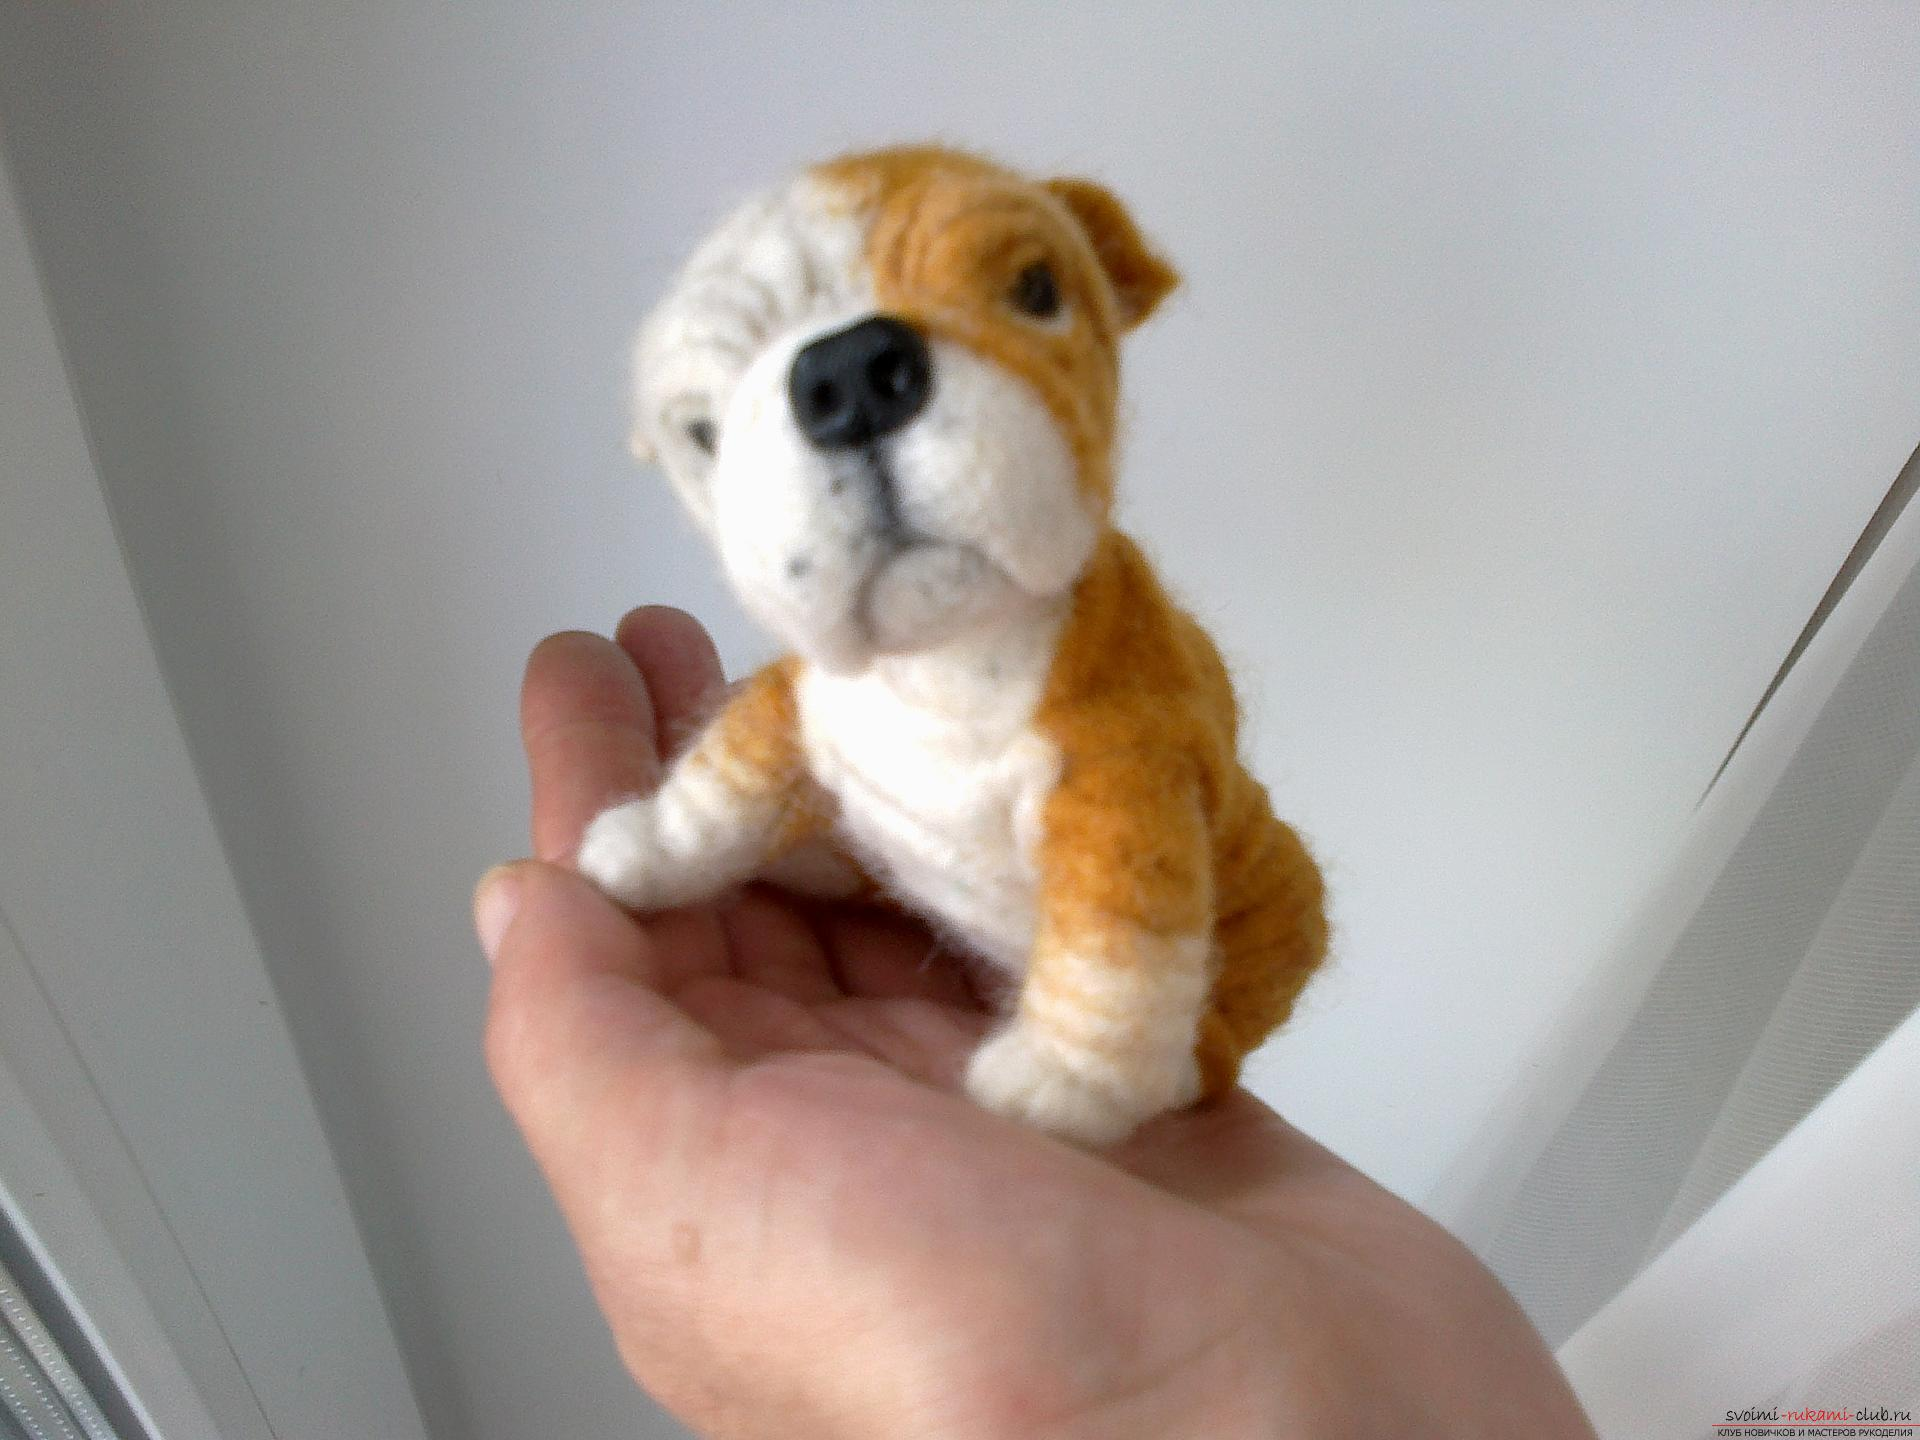 Master class on felting English Bulldog toys made of wool as a gift. Photo №5